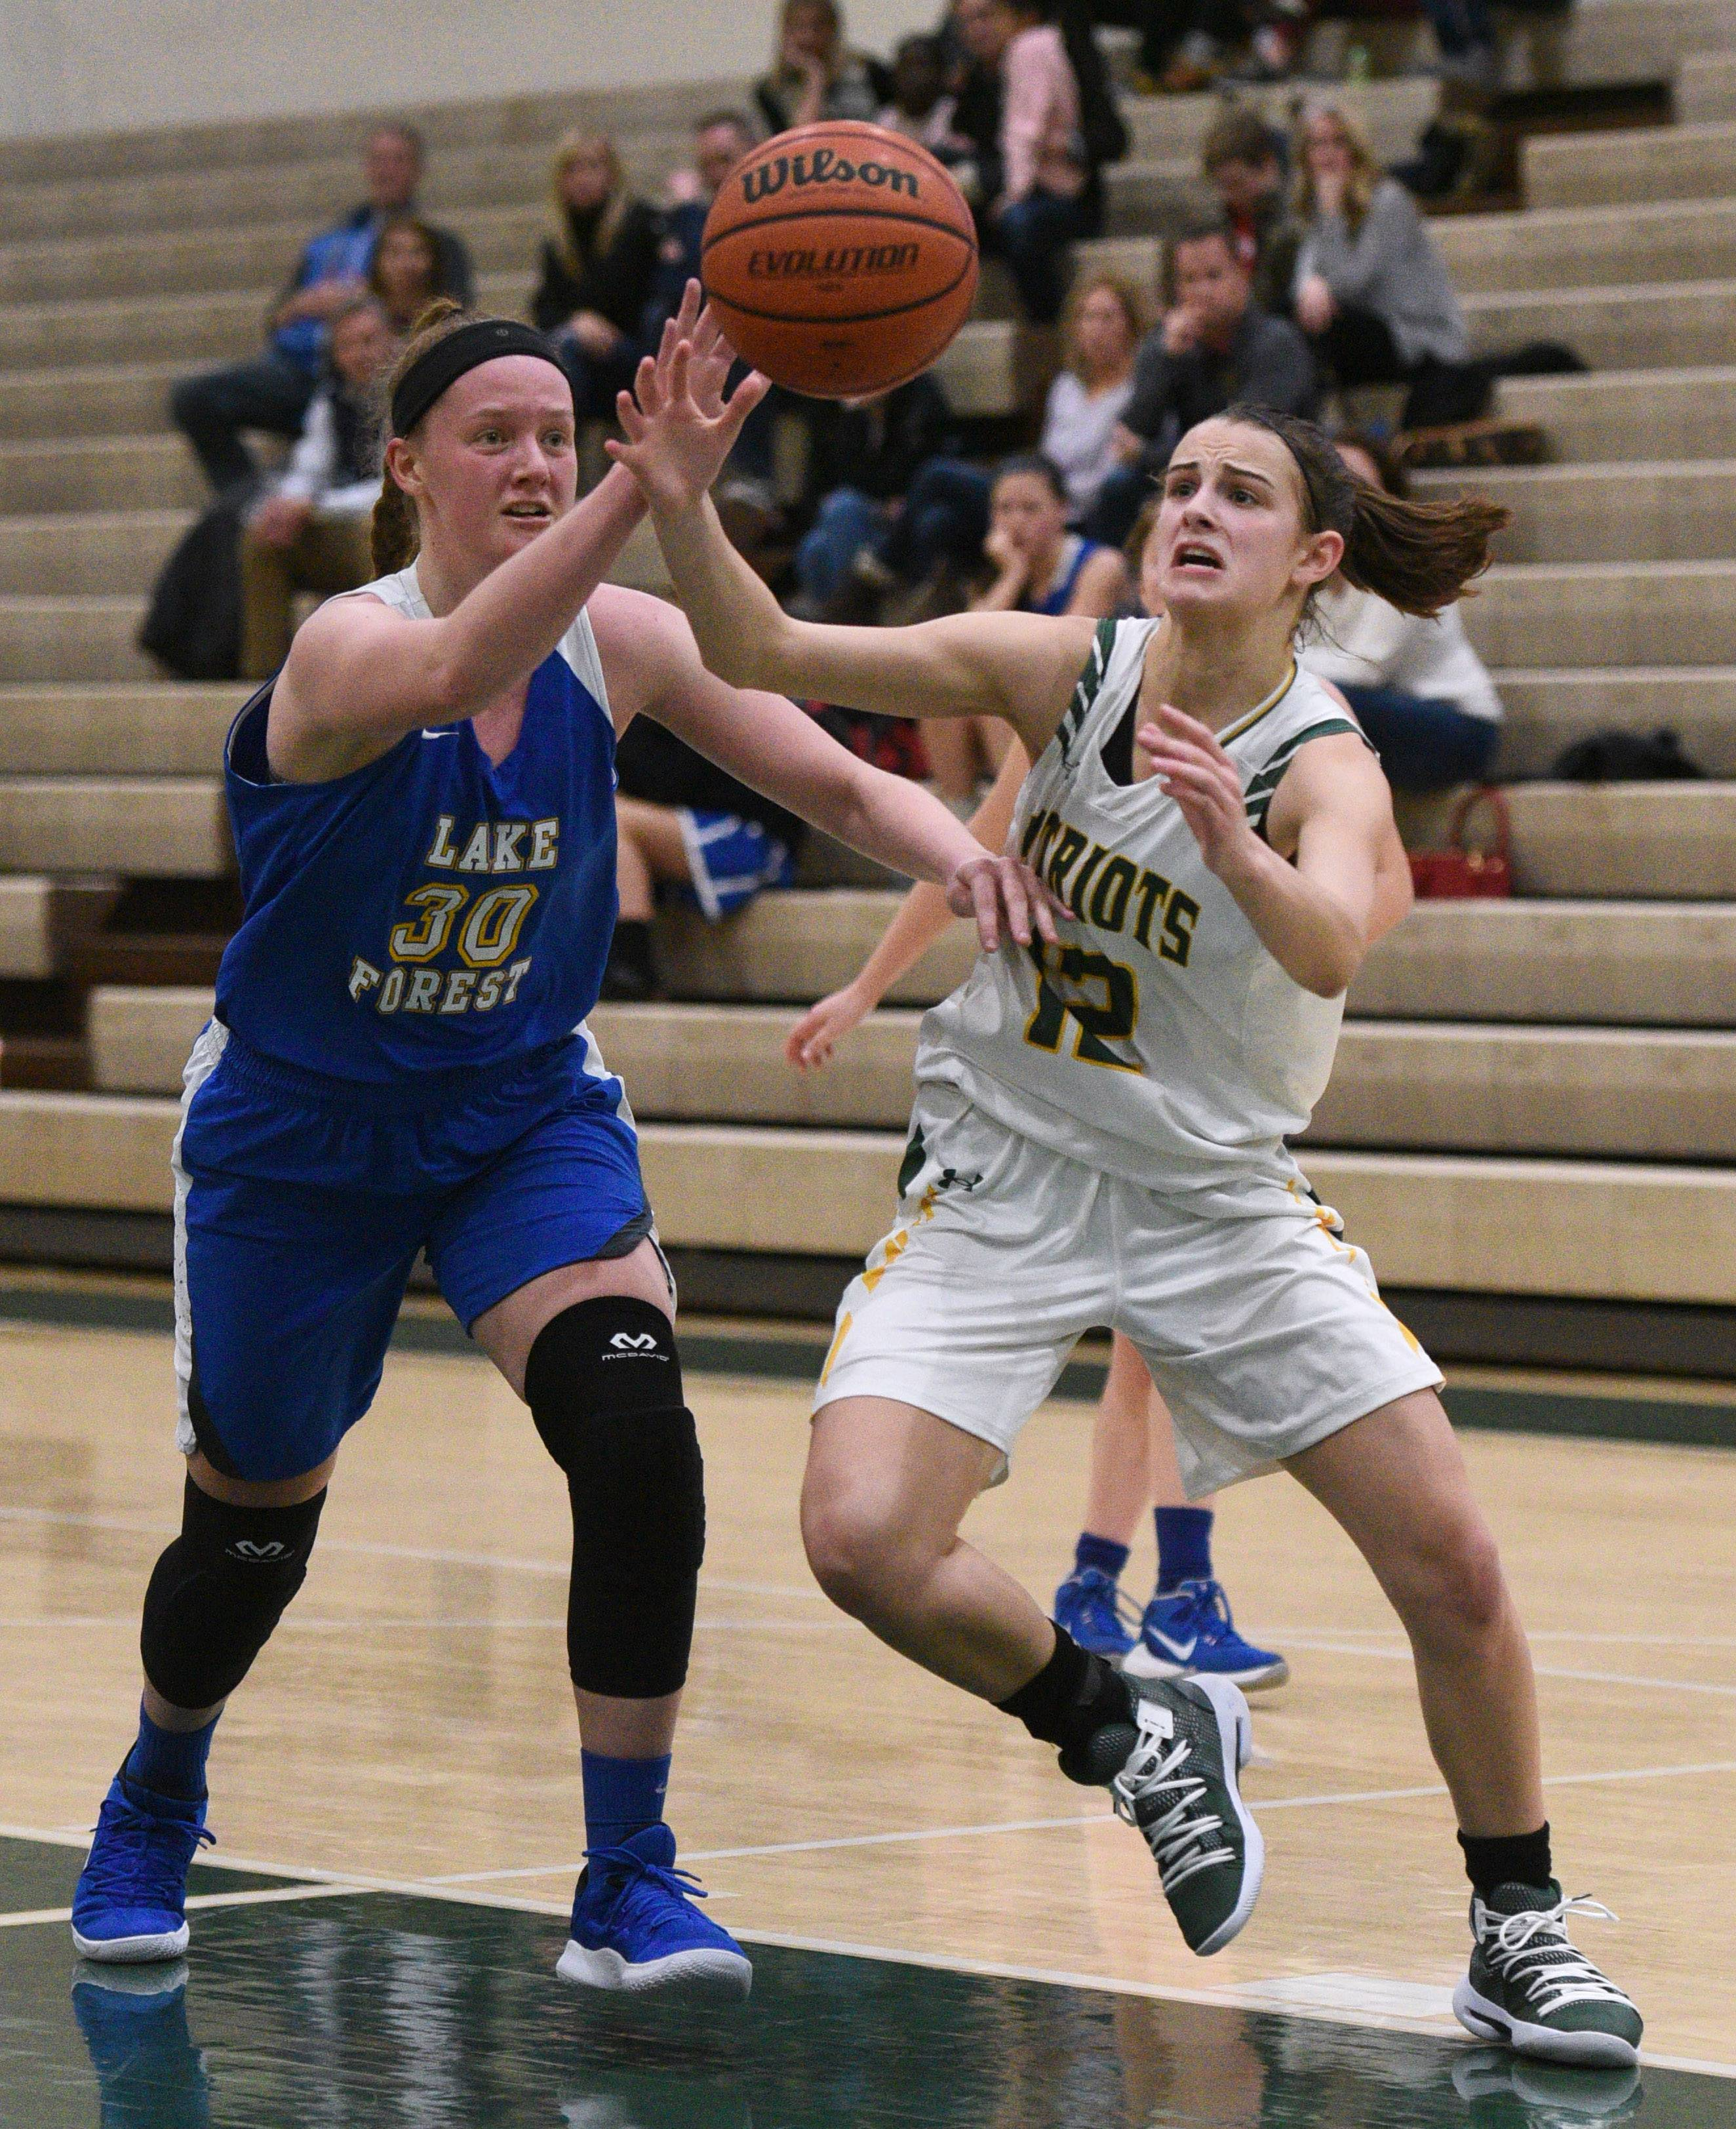 Stevenson's Krissy Hill (12) scrambles for the ball with Lake Forest's Ellie Pearson (30) during Friday's girls basketball game in Lincolnshire.